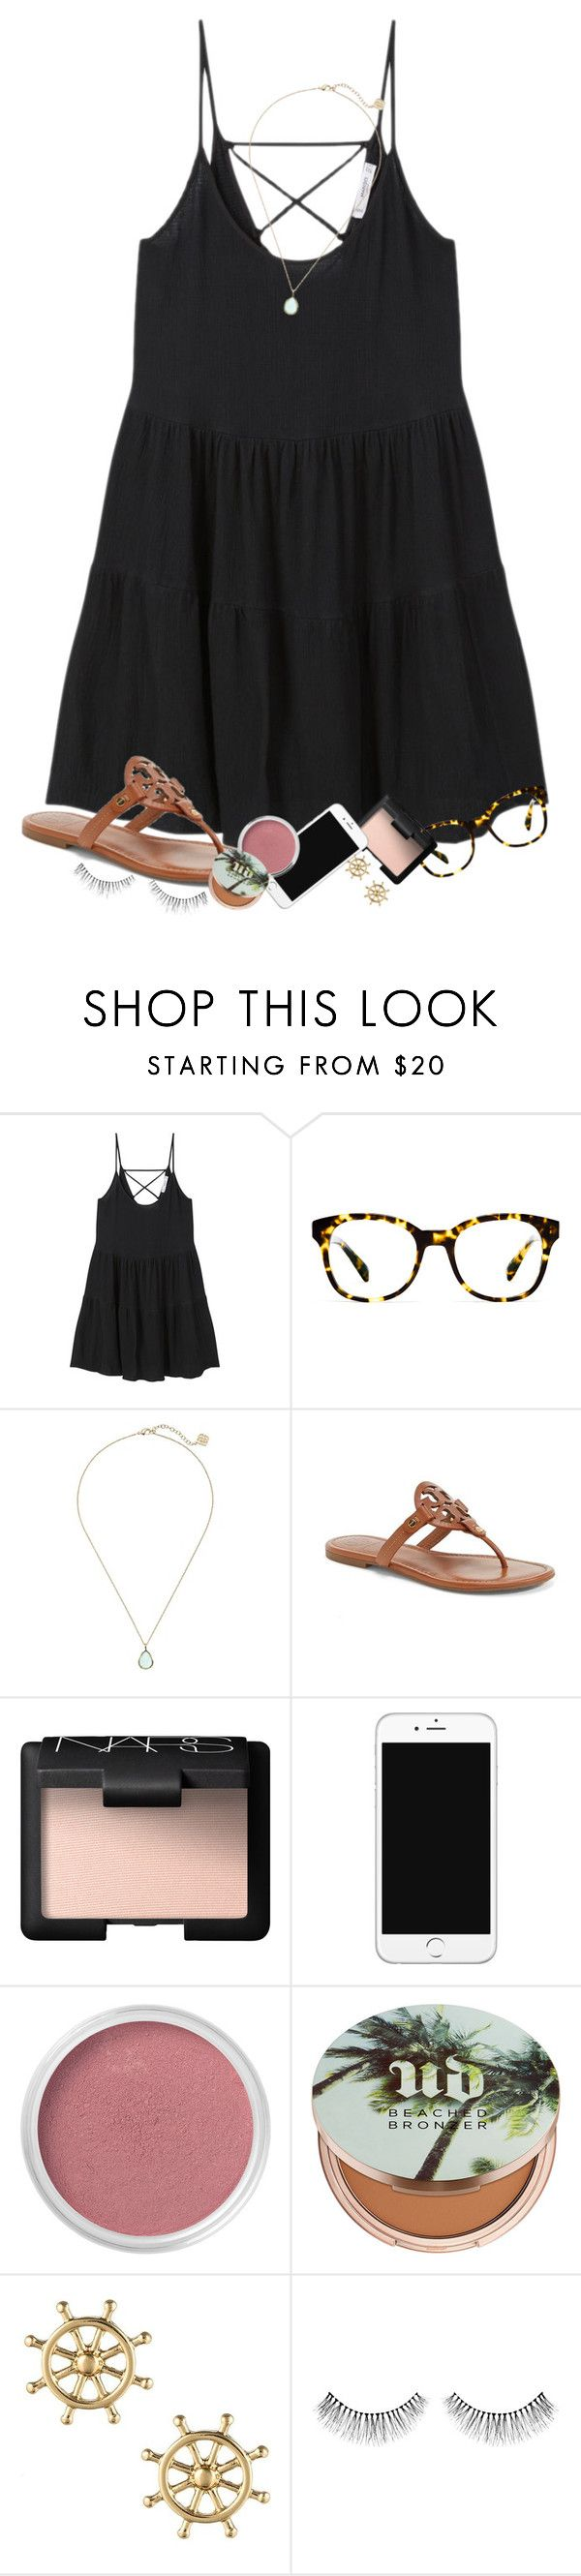 """""""I made it through the first week of school"""" by erinlmarkel ❤ liked on Polyvore featuring MANGO, Warby Parker, Kendra Scott, Tory Burch, NARS Cosmetics, Bare Escentuals, Urban Decay and Sperry"""